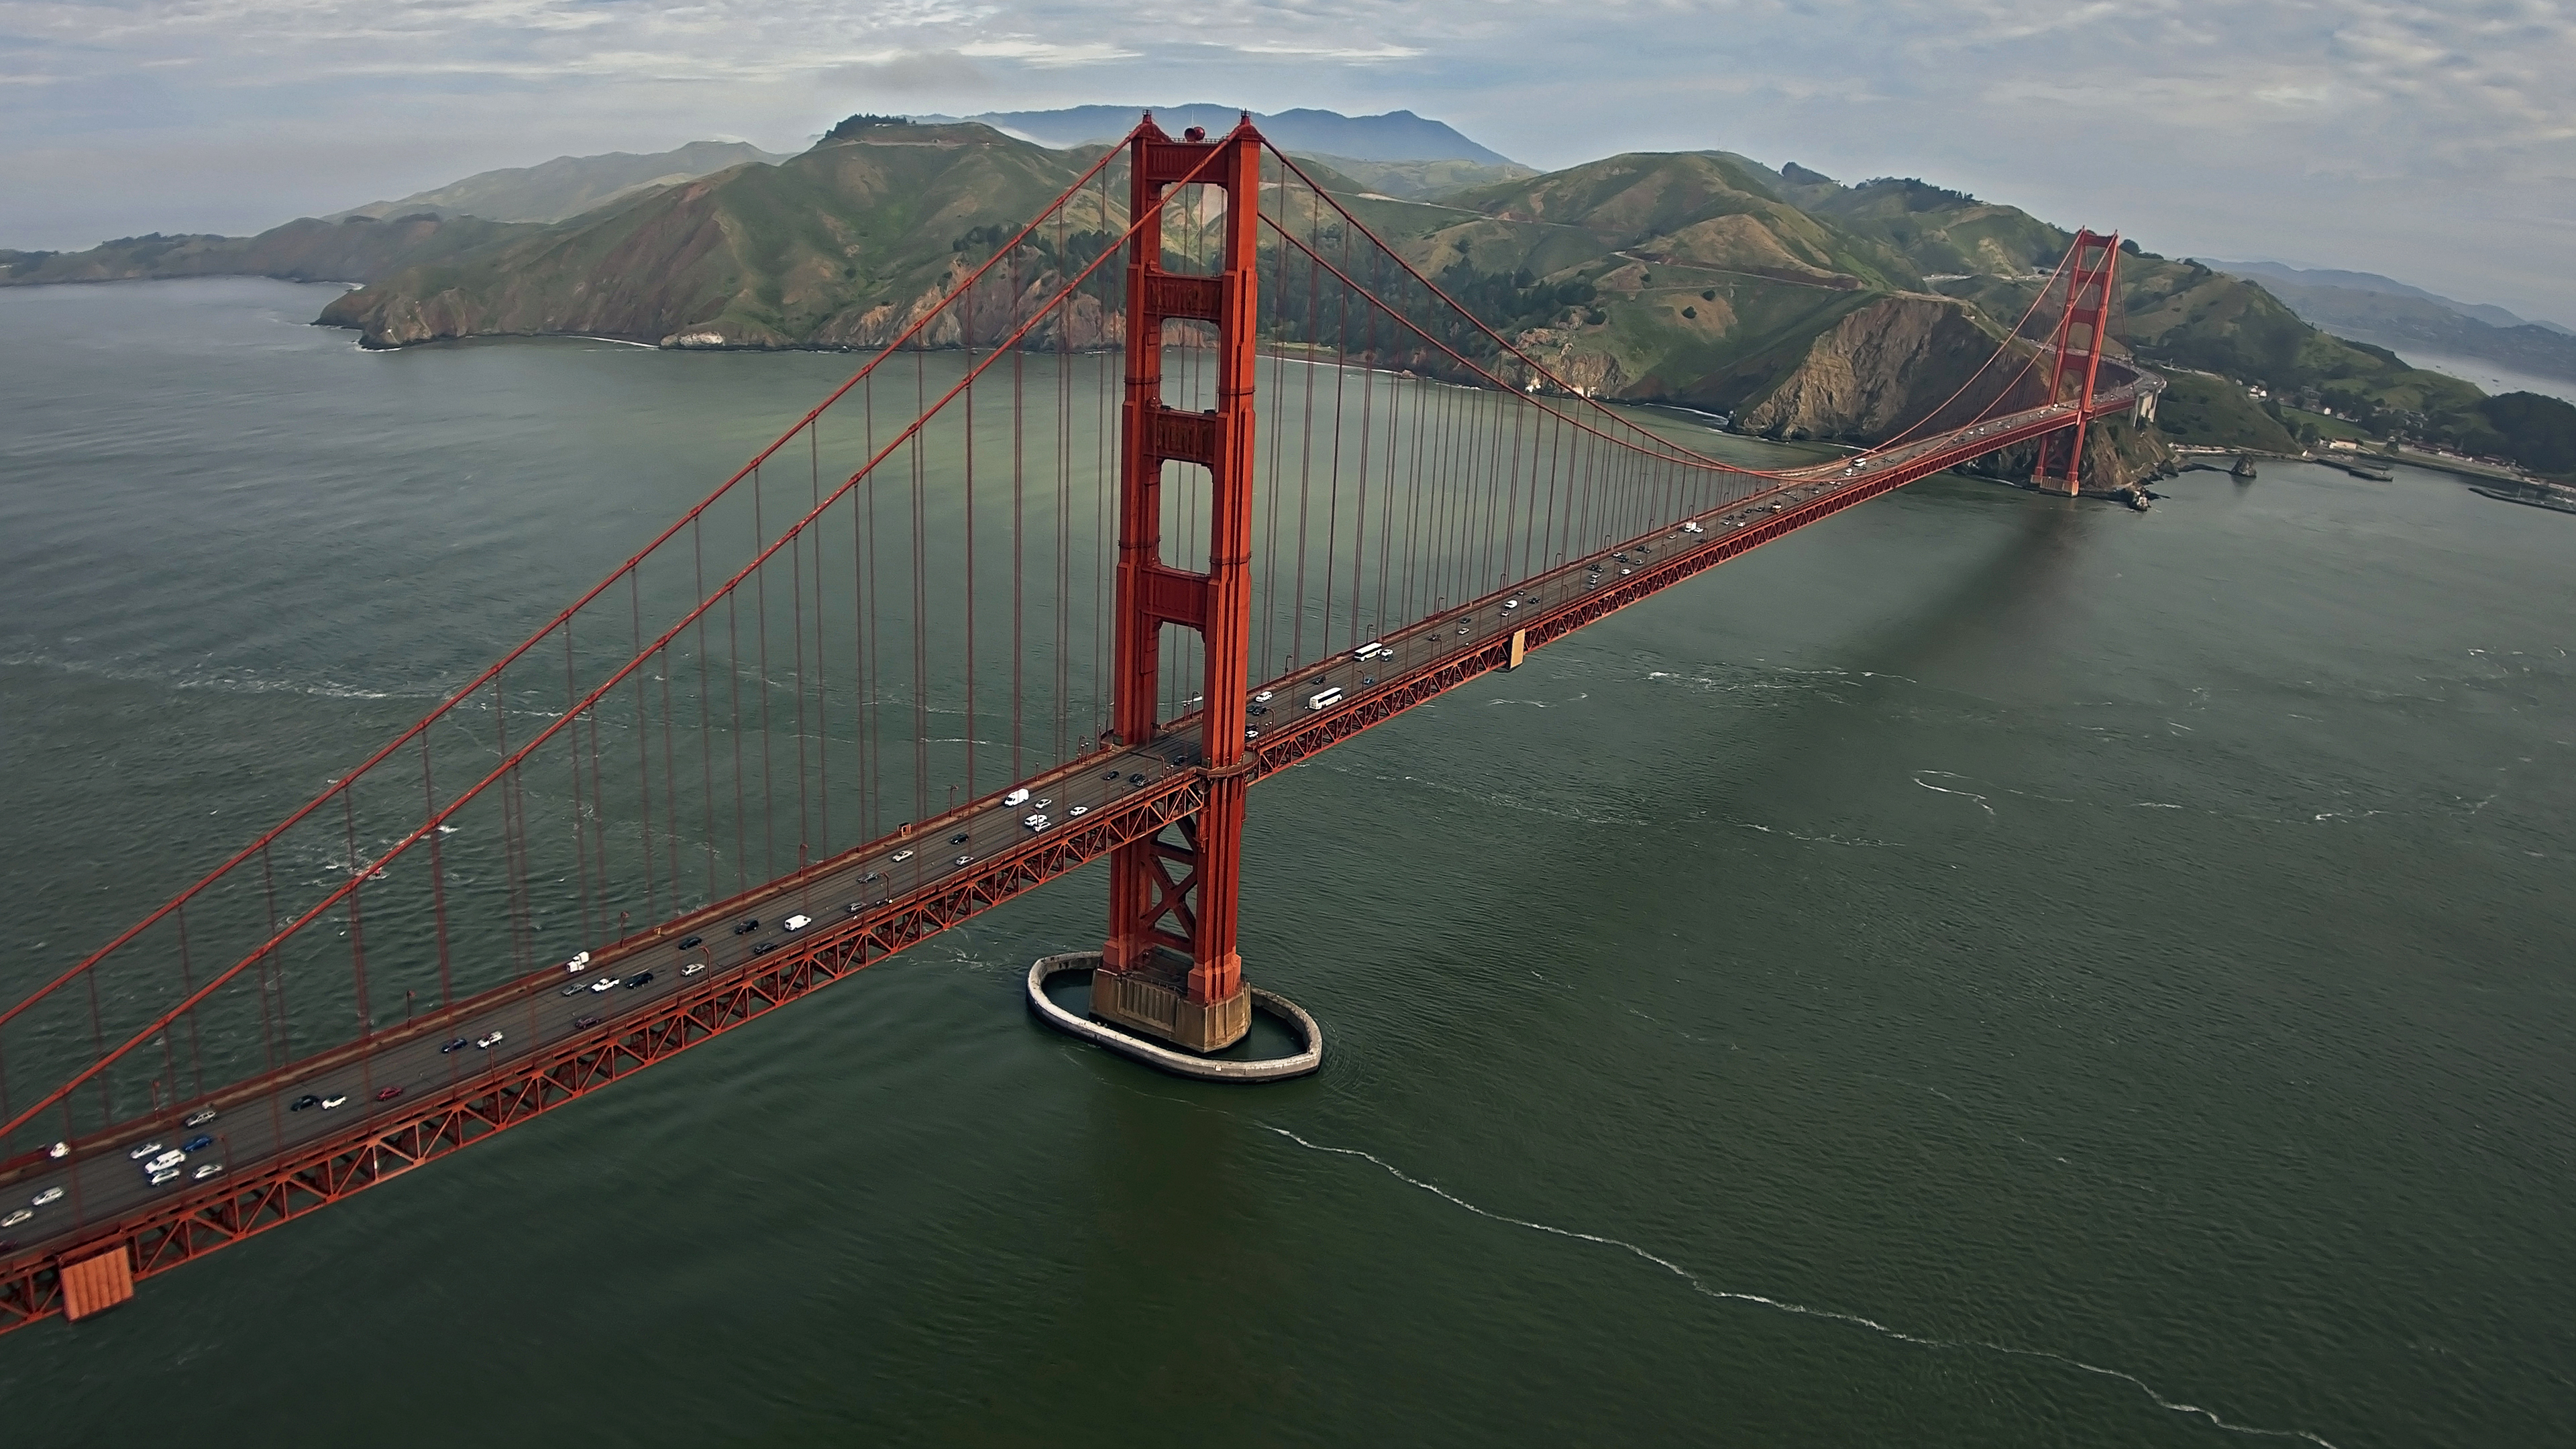 Golden Gate Bridge Facts For Kids - kidzfeed.com